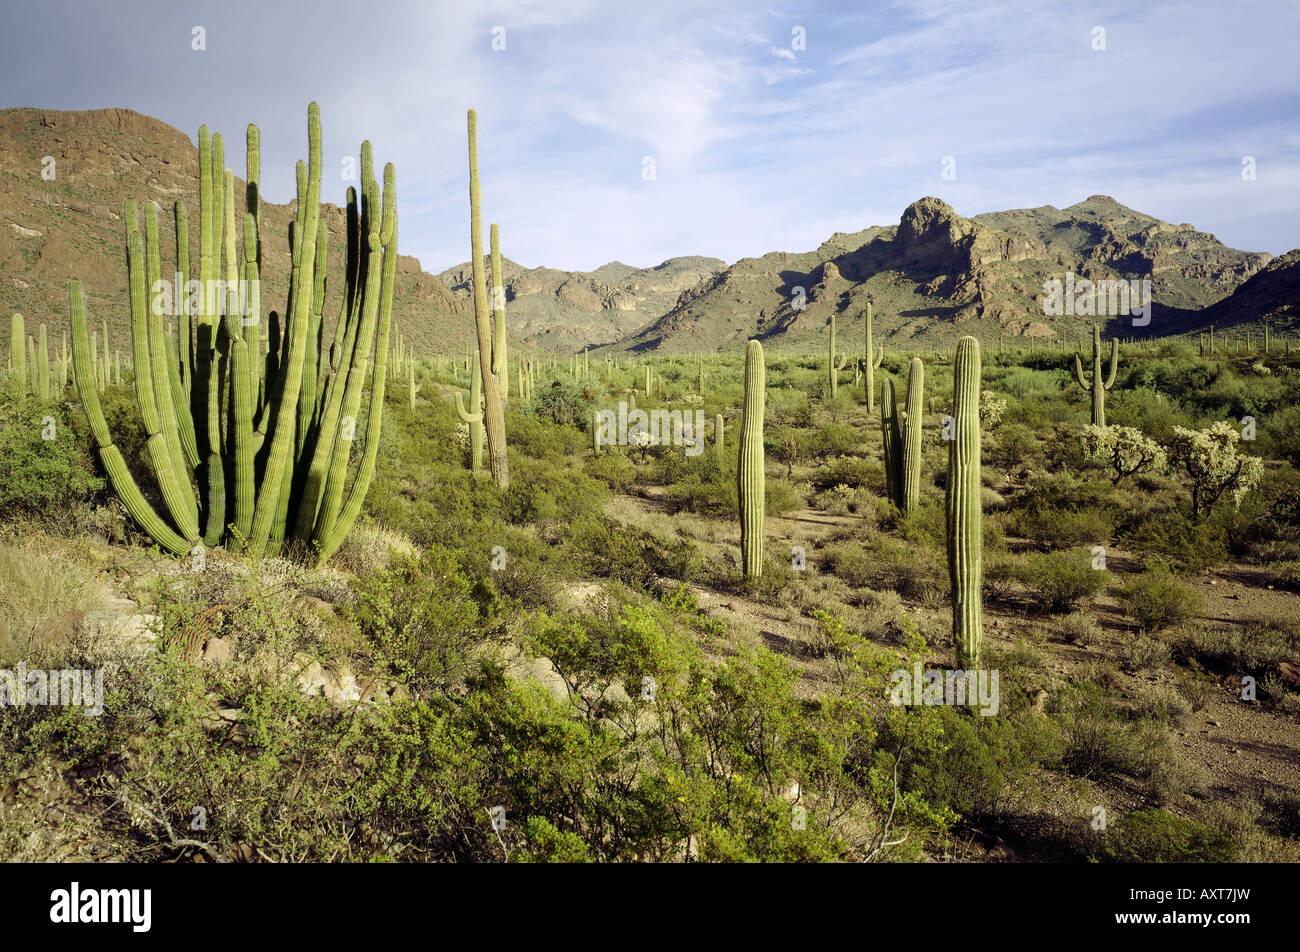 geography / travel, USA, Arizona, Organ Pipe Cactus National monument, cactus landscape, landscapes, saguaro cactus, Stock Photo